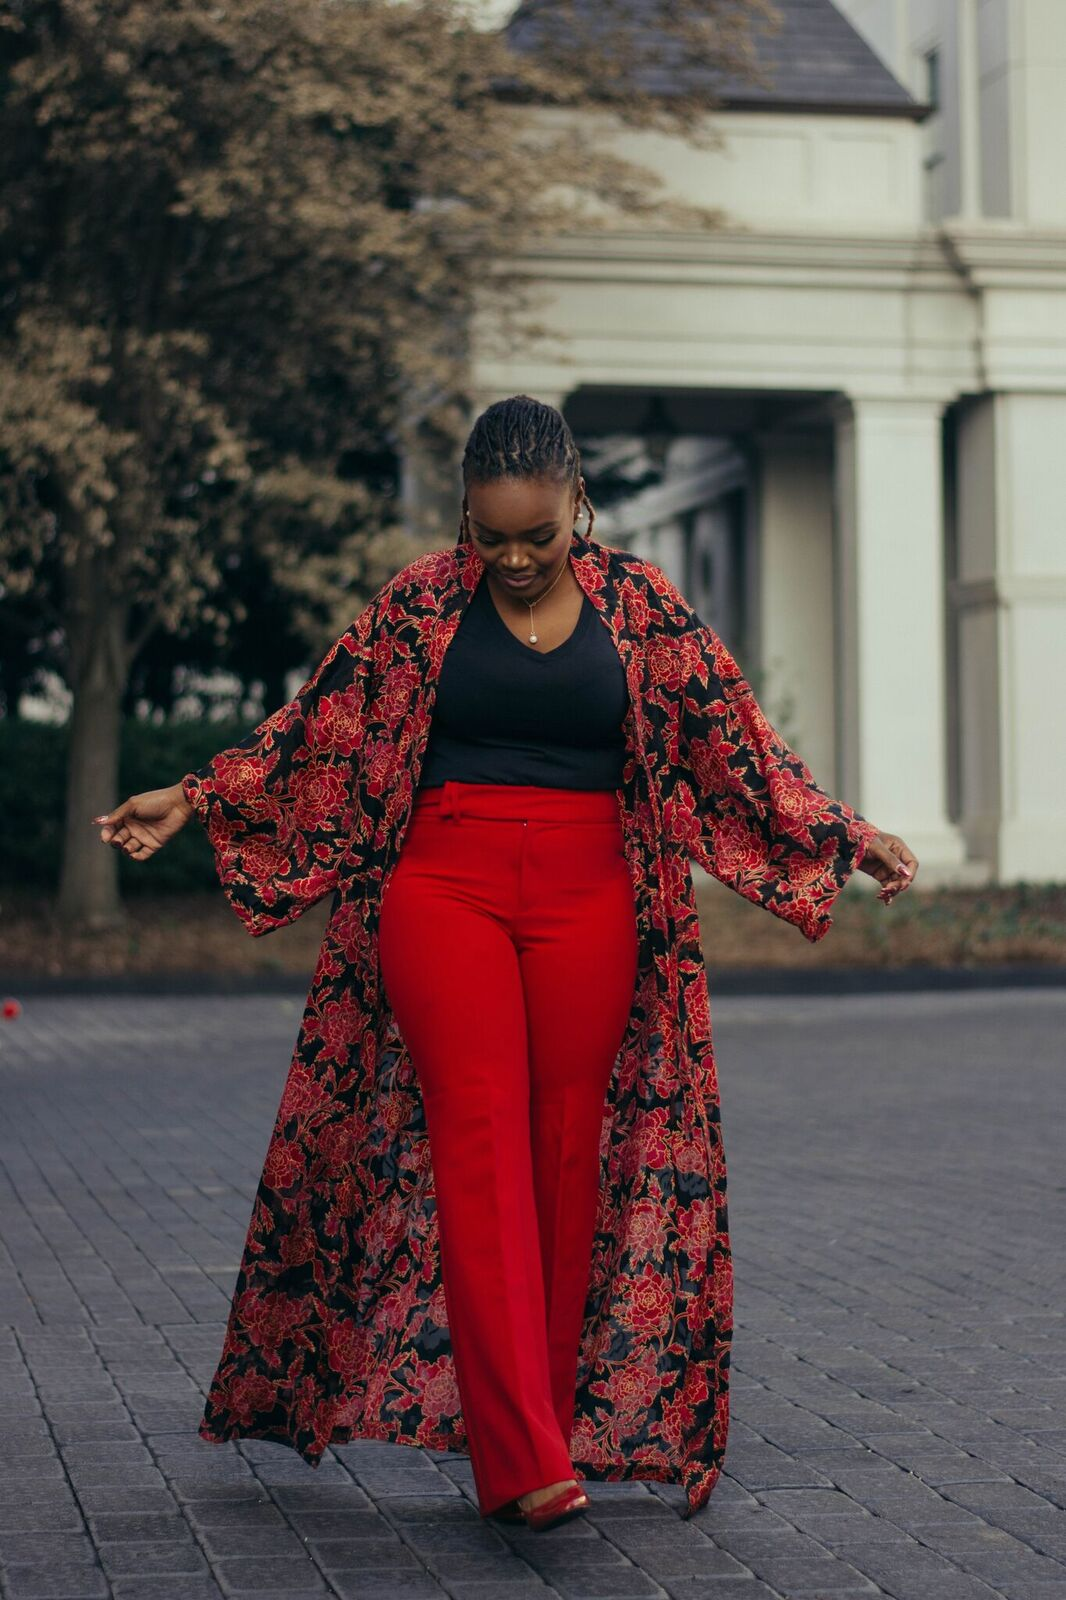 STYLE: RED PANTS FLORAL JACKET